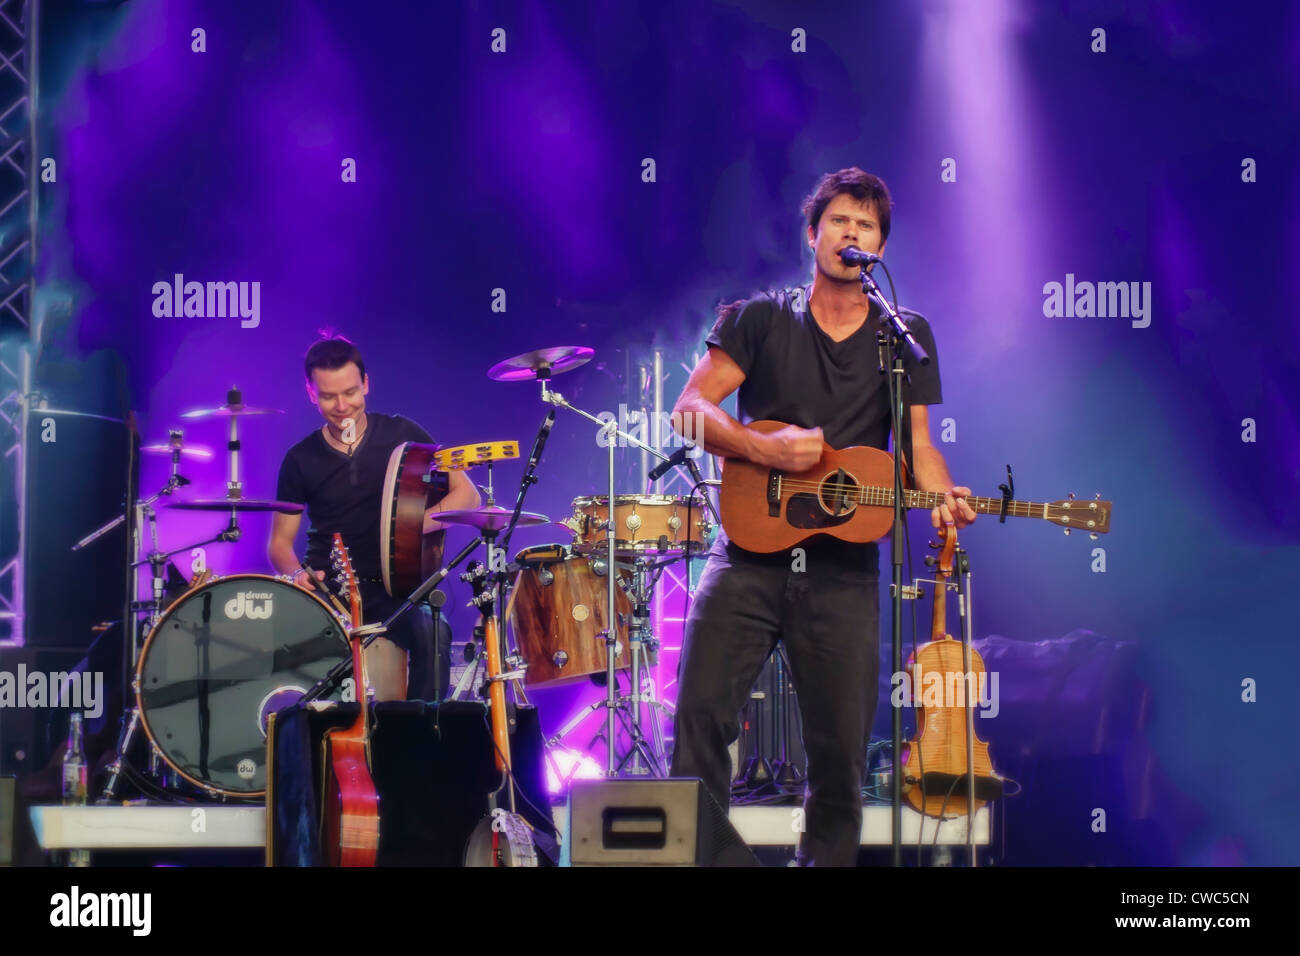 CAMBRIDGE UK, JULY 28 2012: Seth Lakeman contemporary folk artist performing at the Cambridge Folk Festival, UK - Stock Image